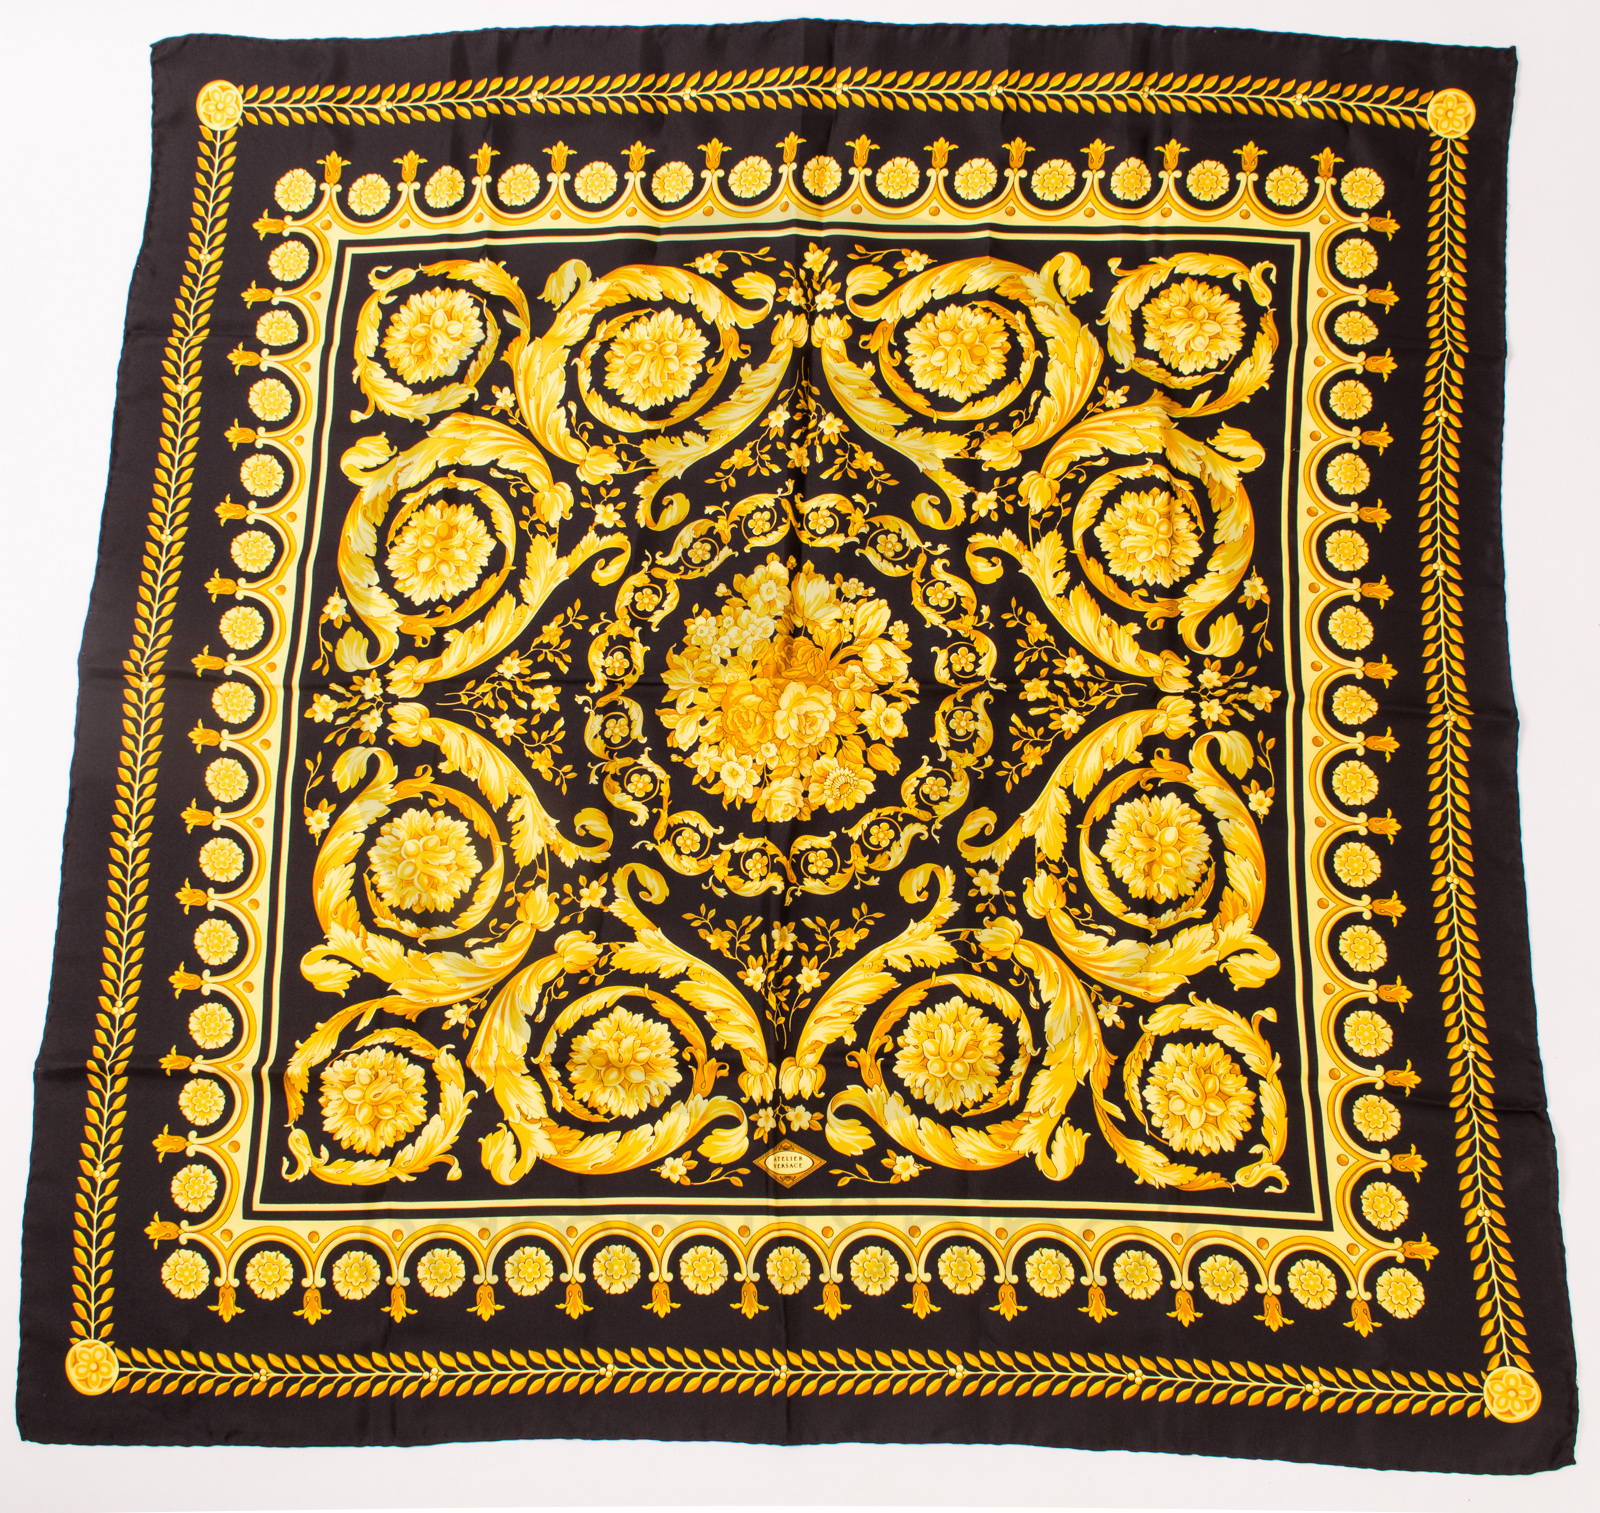 united states rug with Gianni Versace Silk Foulard Scarf on Poaching furthermore Floor Rug Hooking Frame further Small Wooden Weaving Loom For A Child as well Stock Foto Kippenhok Image22755760 as well Lakeshore Learning A Place For Everyone Classroom Carpet.